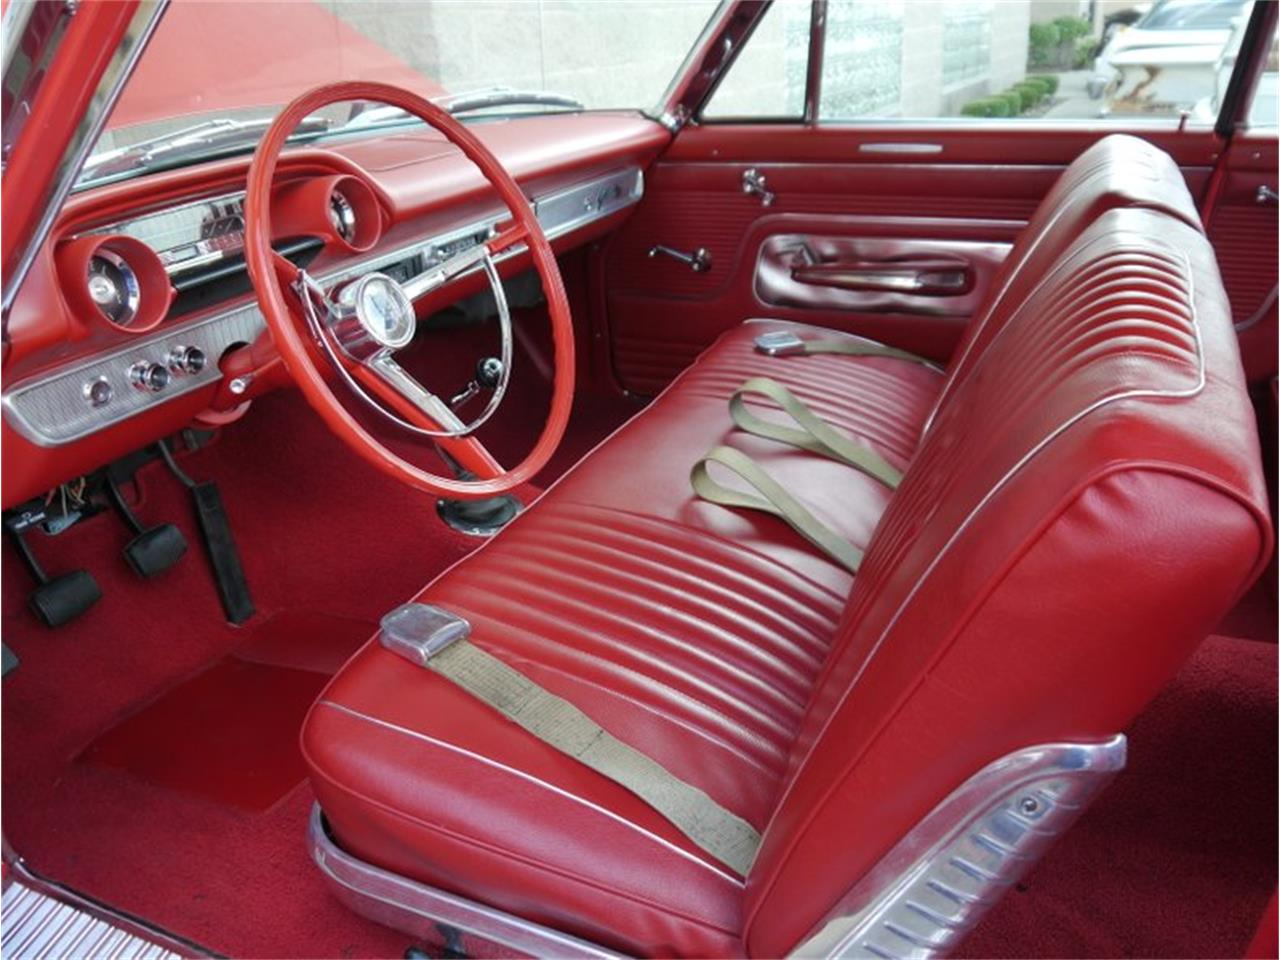 1963 Ford Galaxie 500 for sale in Alsip, IL – photo 76